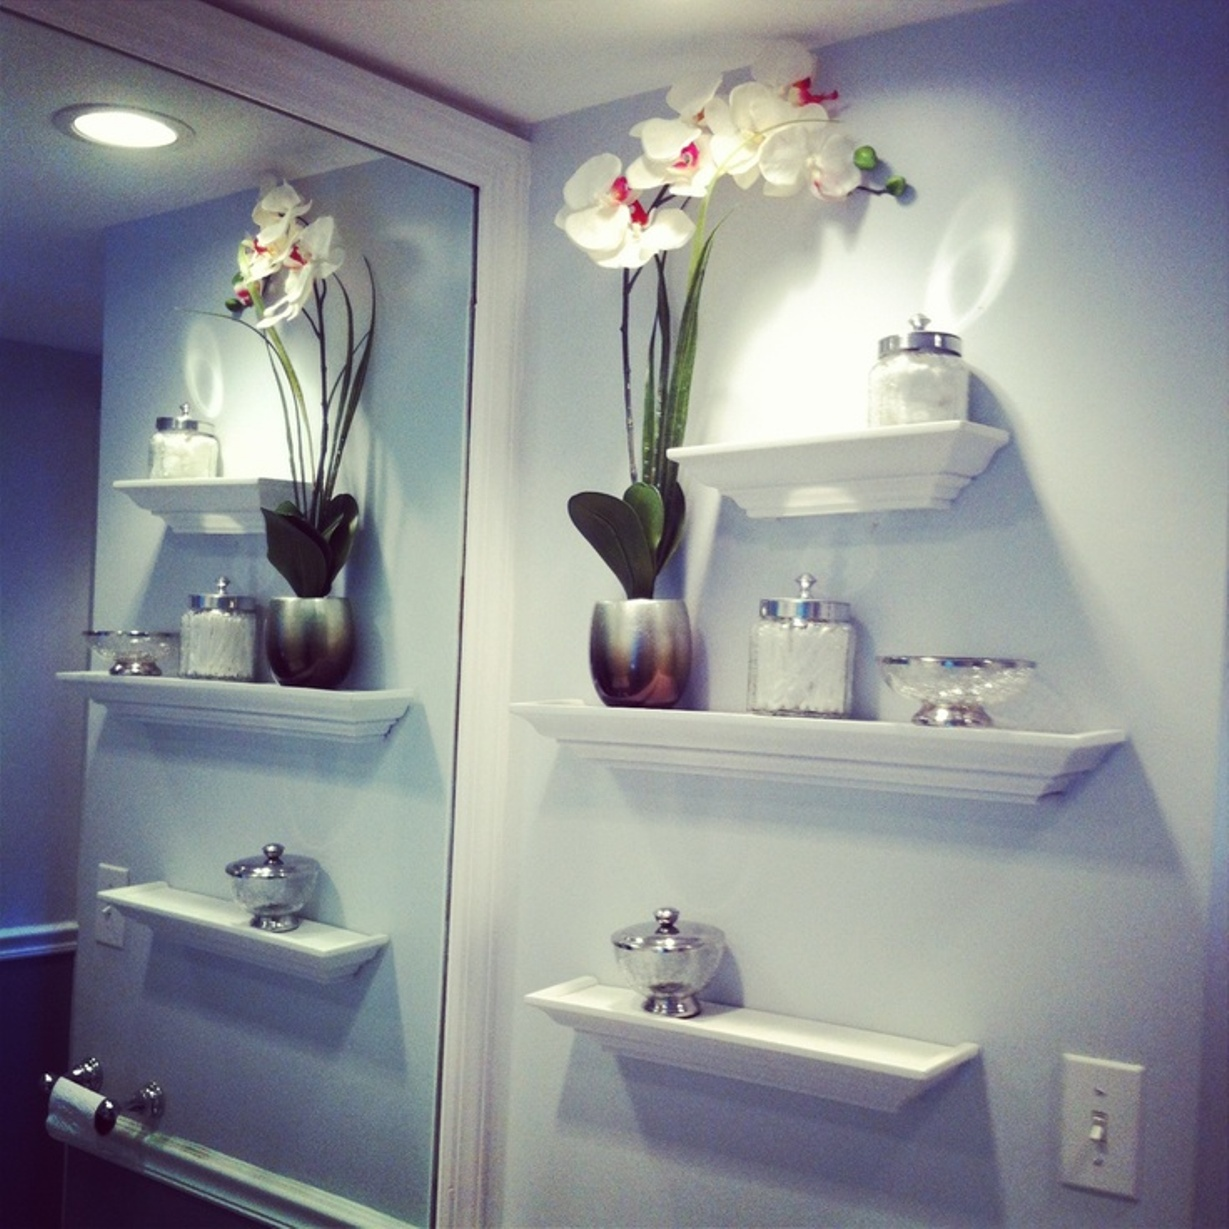 Stunning Modern Bathroom Idea With Large Wall Mirror And Molded Bathroom  Shelves In White With Orchid